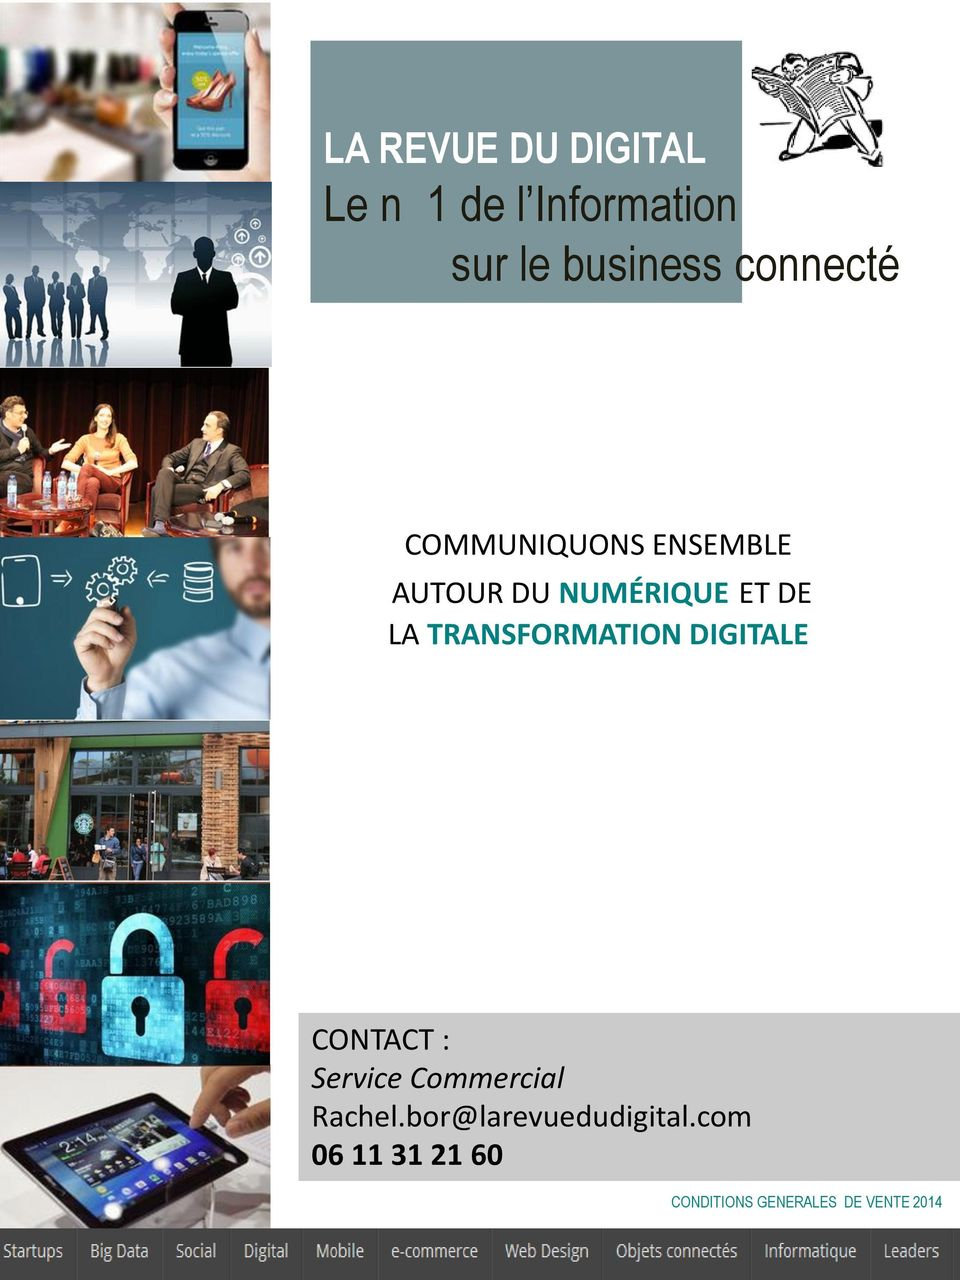 LA TRANSFORMATION DIGITALE CONTACT : Service